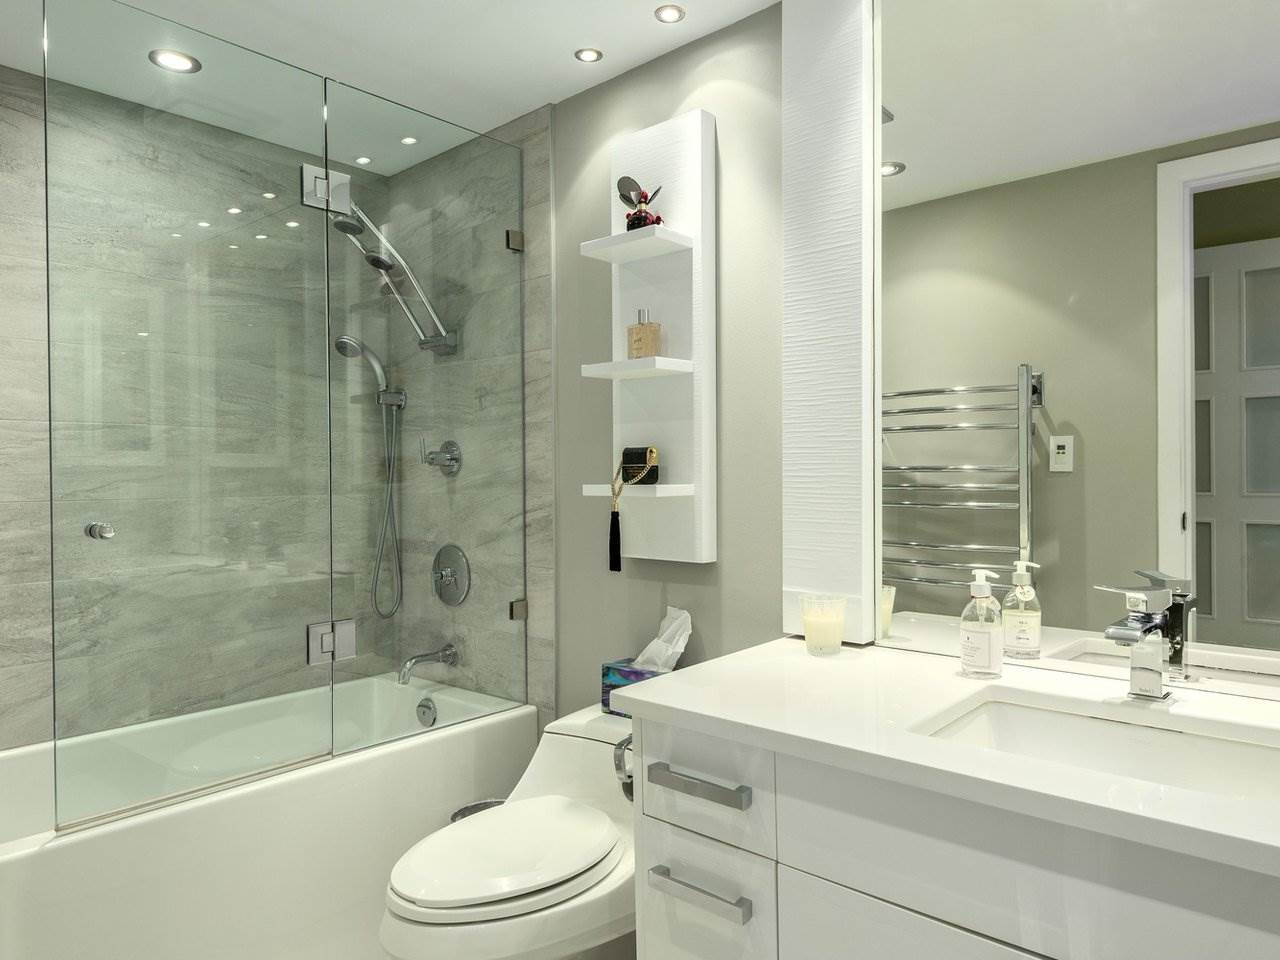 705 1201 MARINASIDE CRESCENT - Yaletown Apartment/Condo for sale, 3 Bedrooms (R2480191) - #10